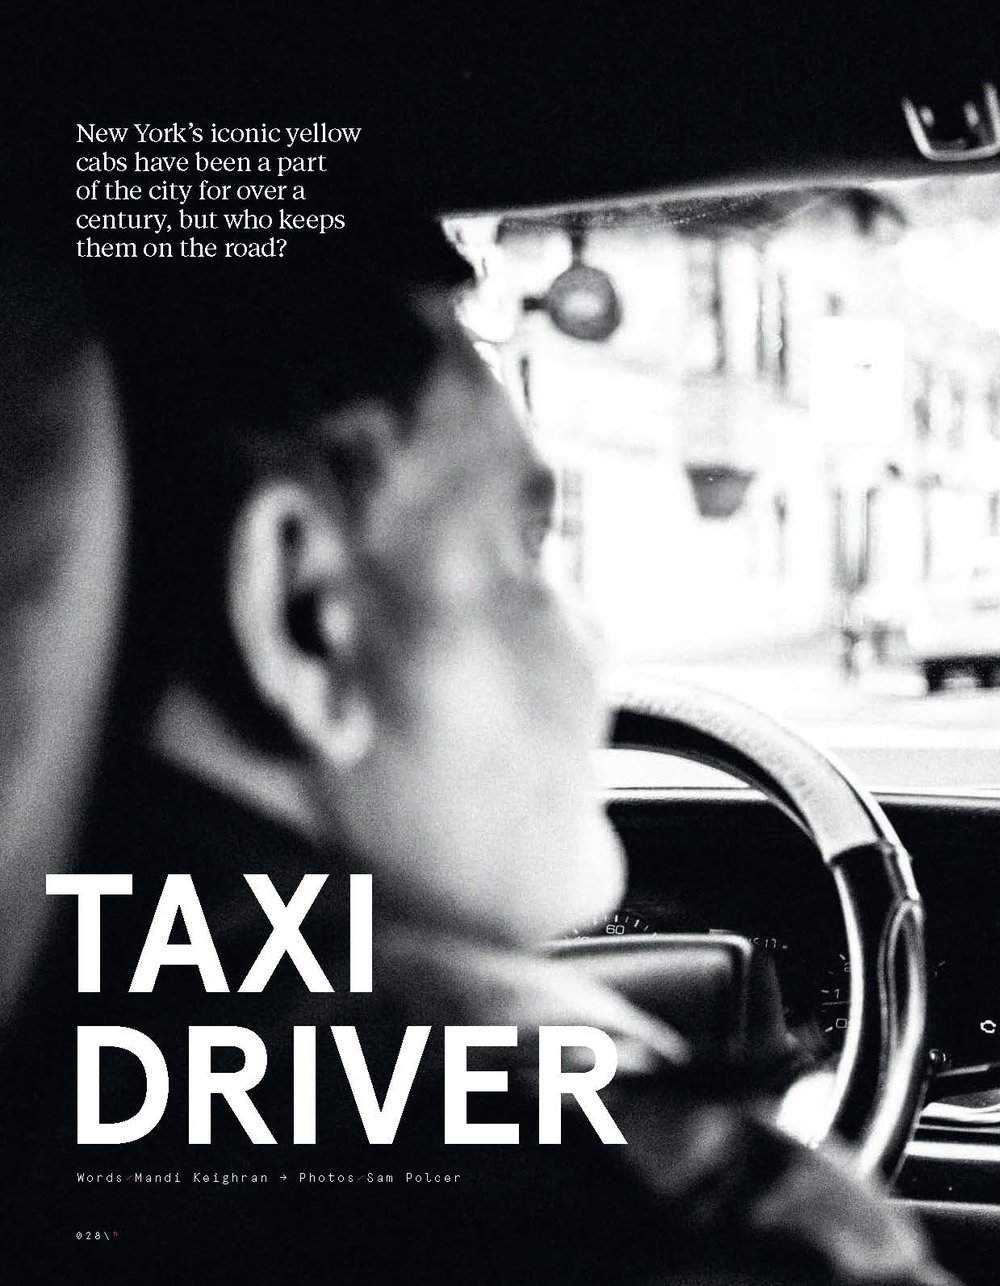 Taxi_Page_01.jpg